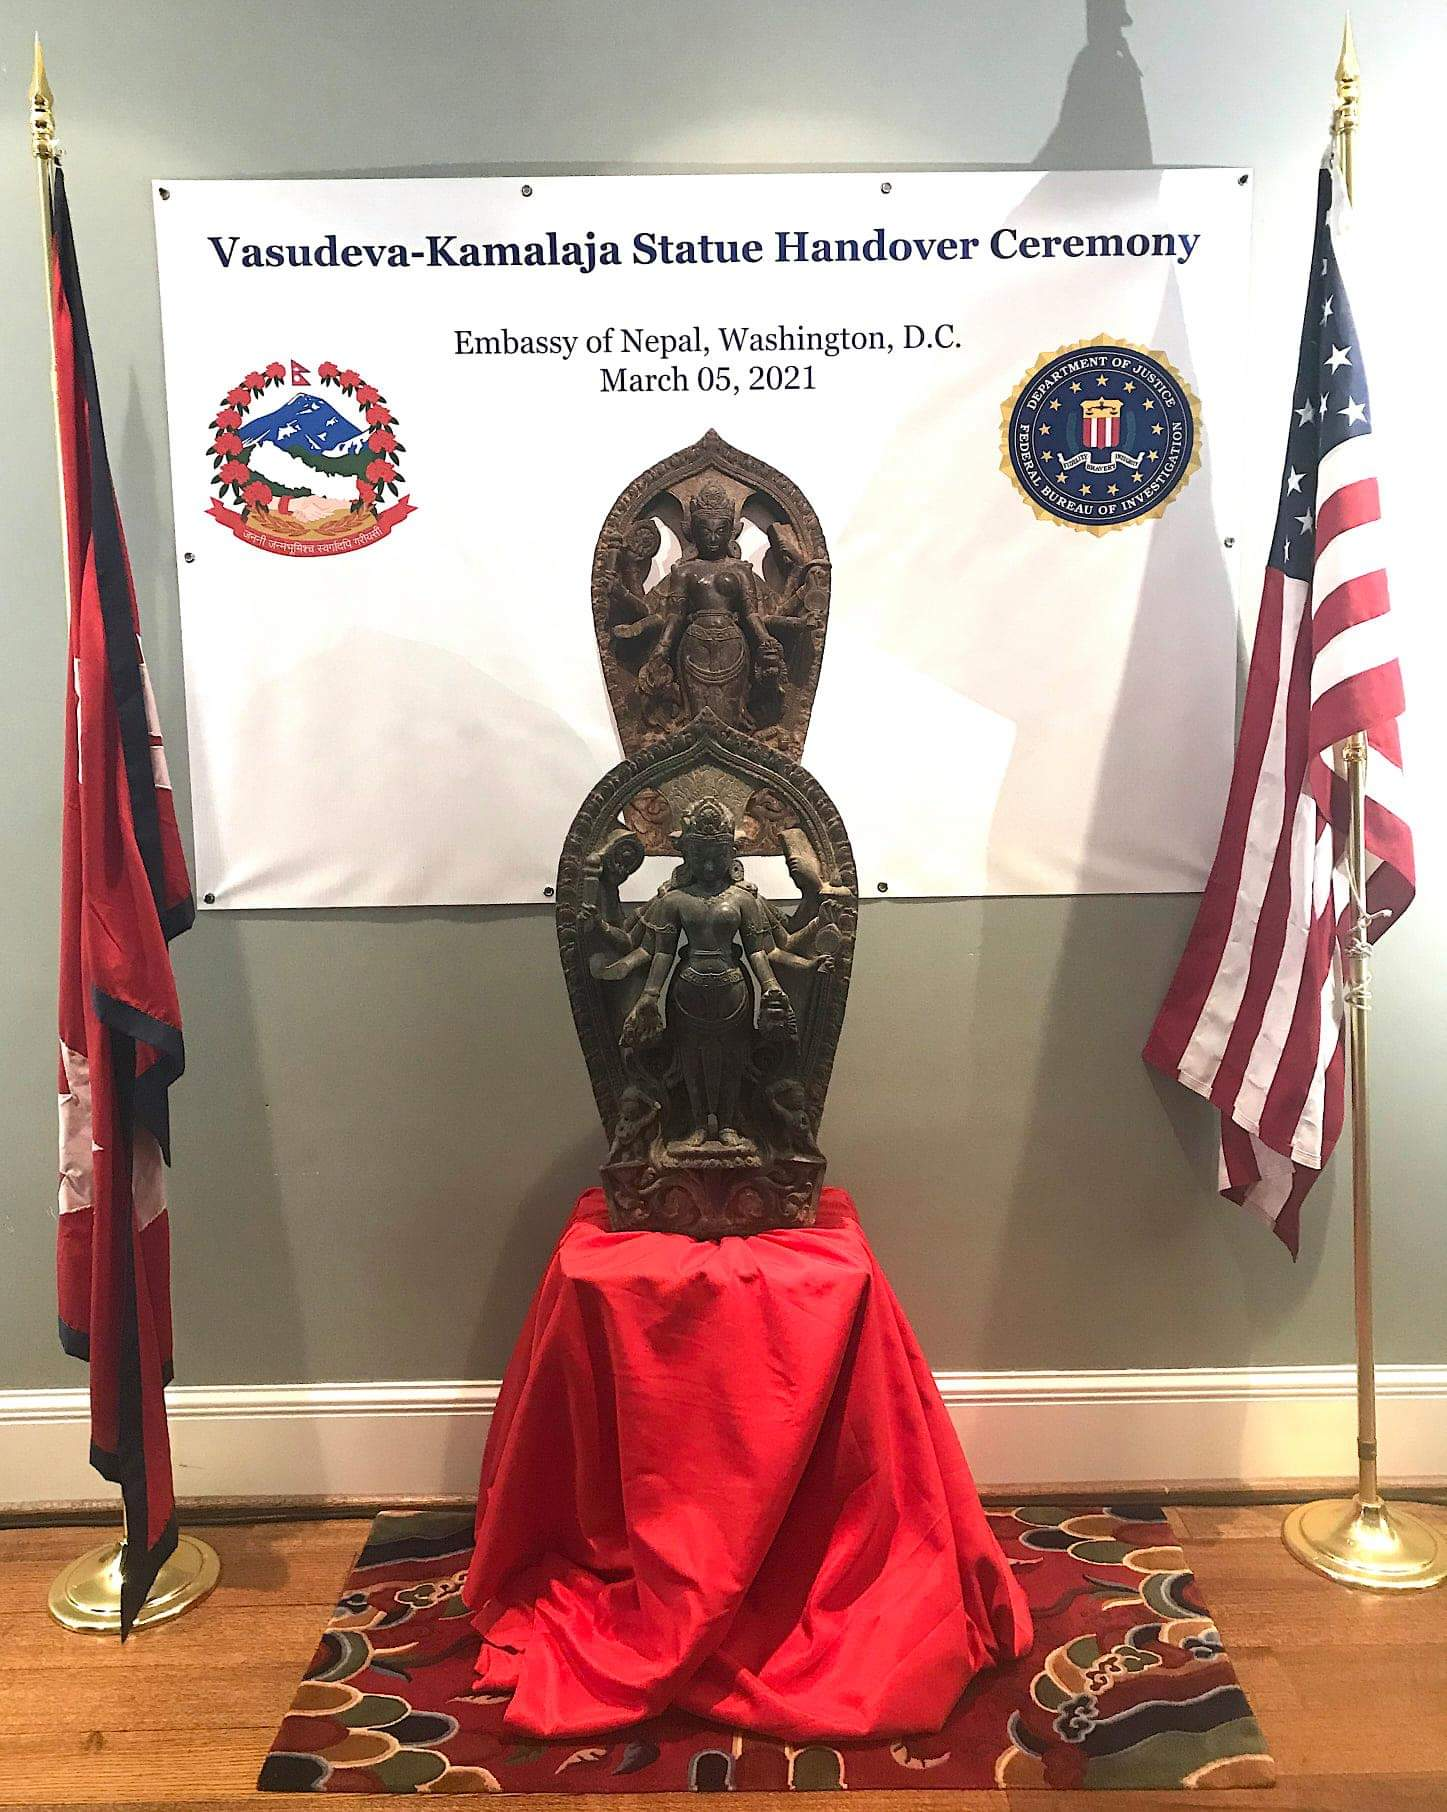 US government has handed over a statue of Vasudev-Kamalaja